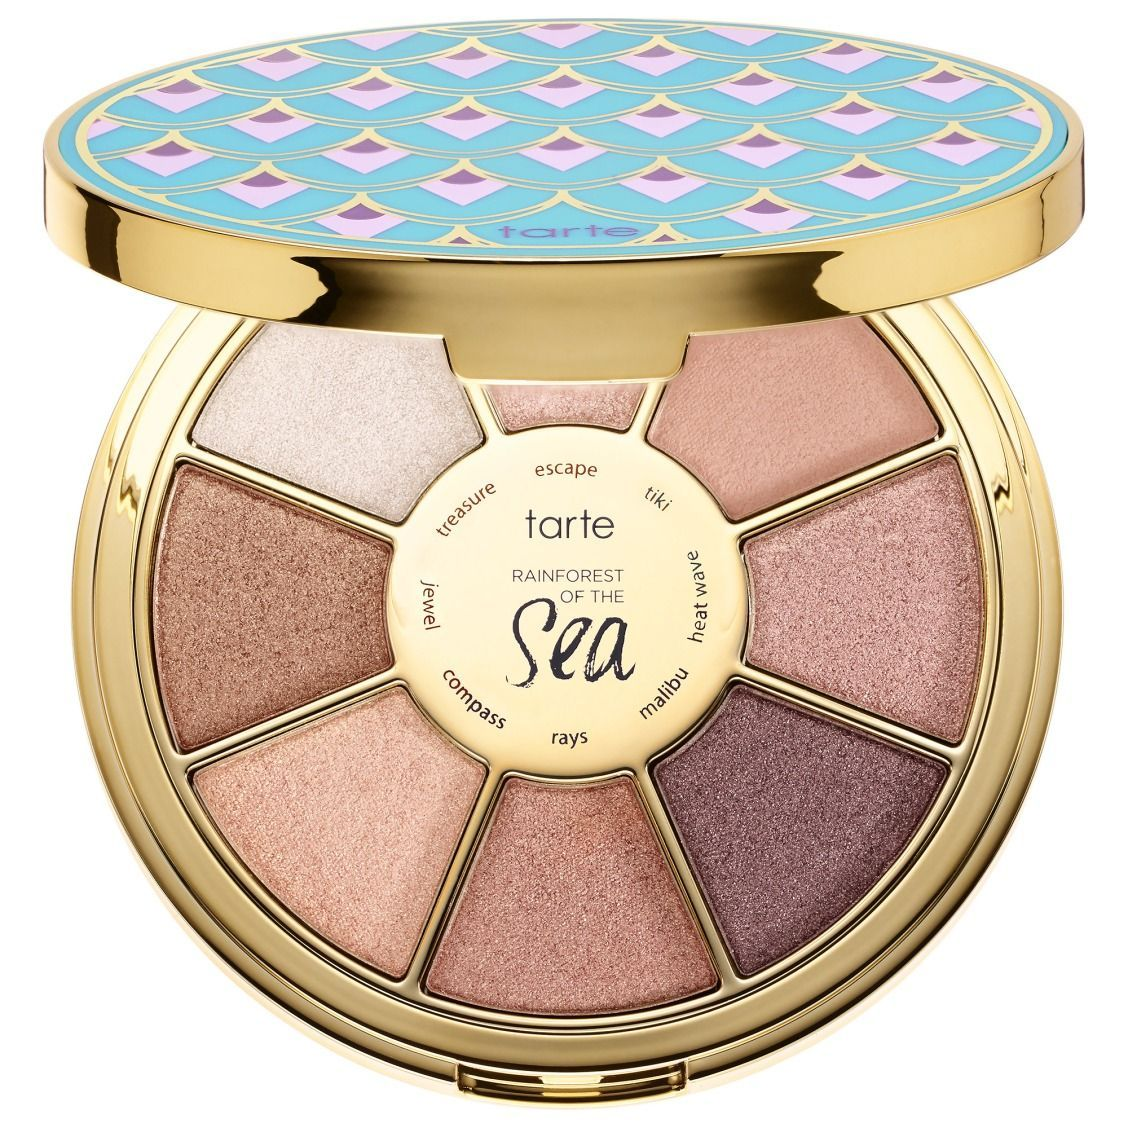 Why Not Give Budget Make Up Brands A Try With Images Makeup Skin Care Eye Makeup Skin Makeup